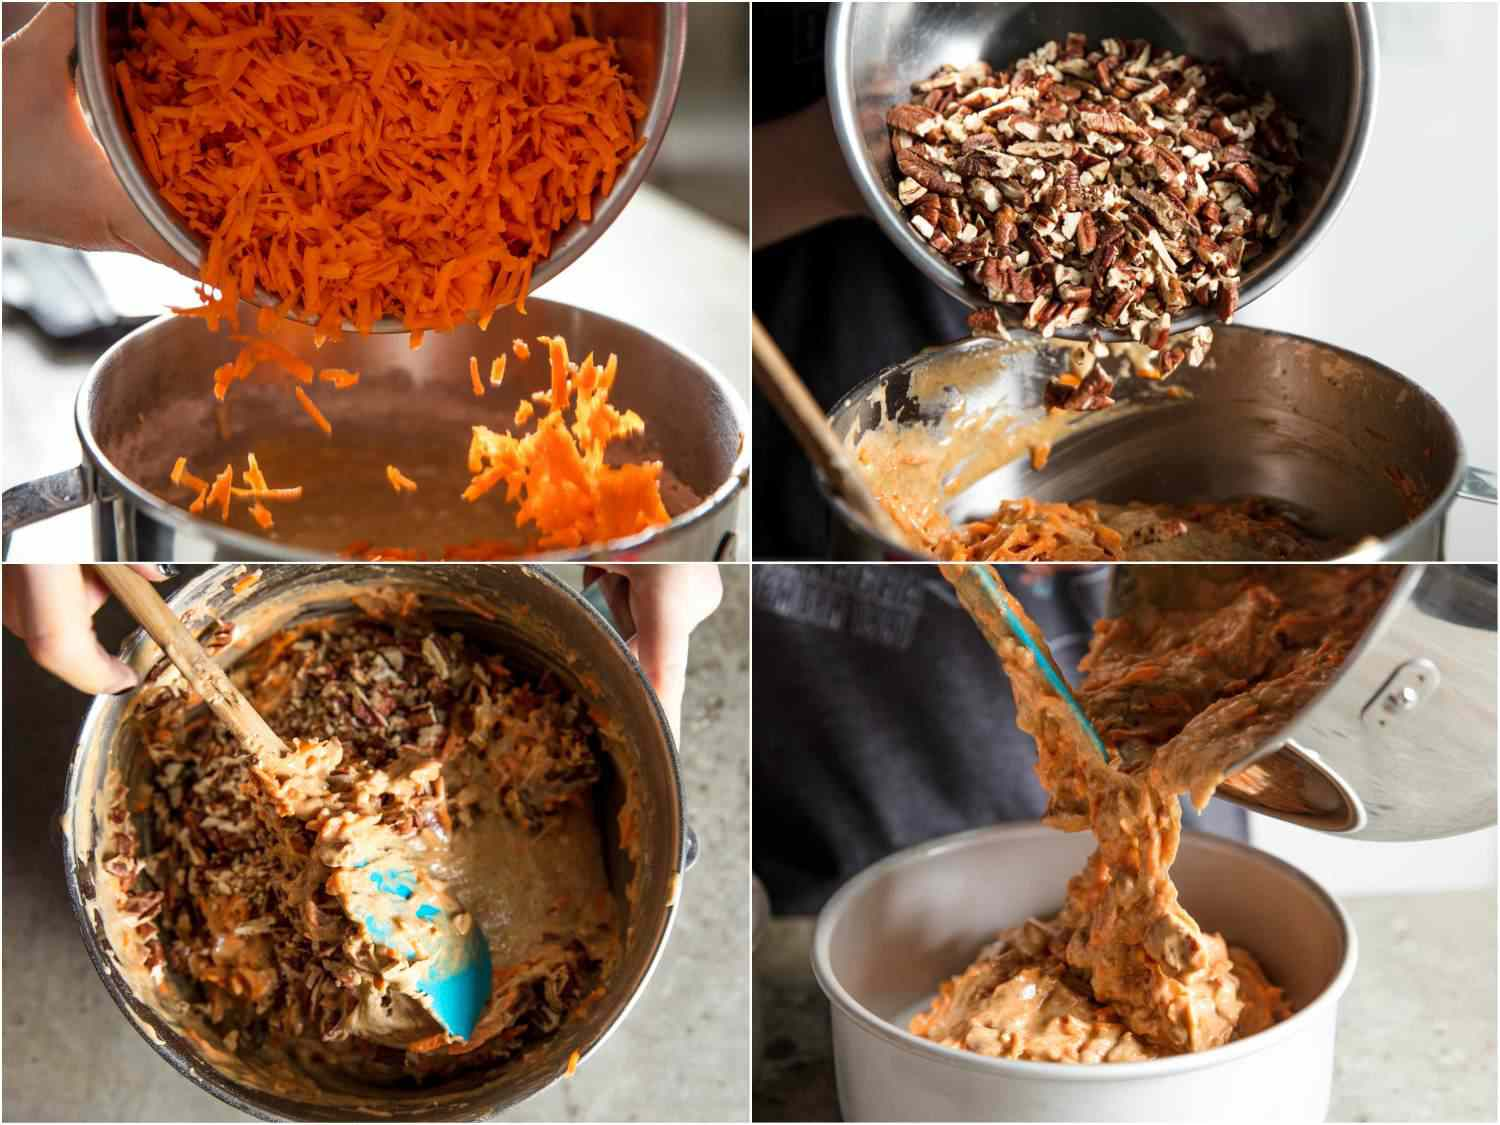 Collage of photos of making carrot cake: adding shredded carrots to batter, adding toasted pecans to batter, mixing with a flexible spatula, transferring to a cake pan